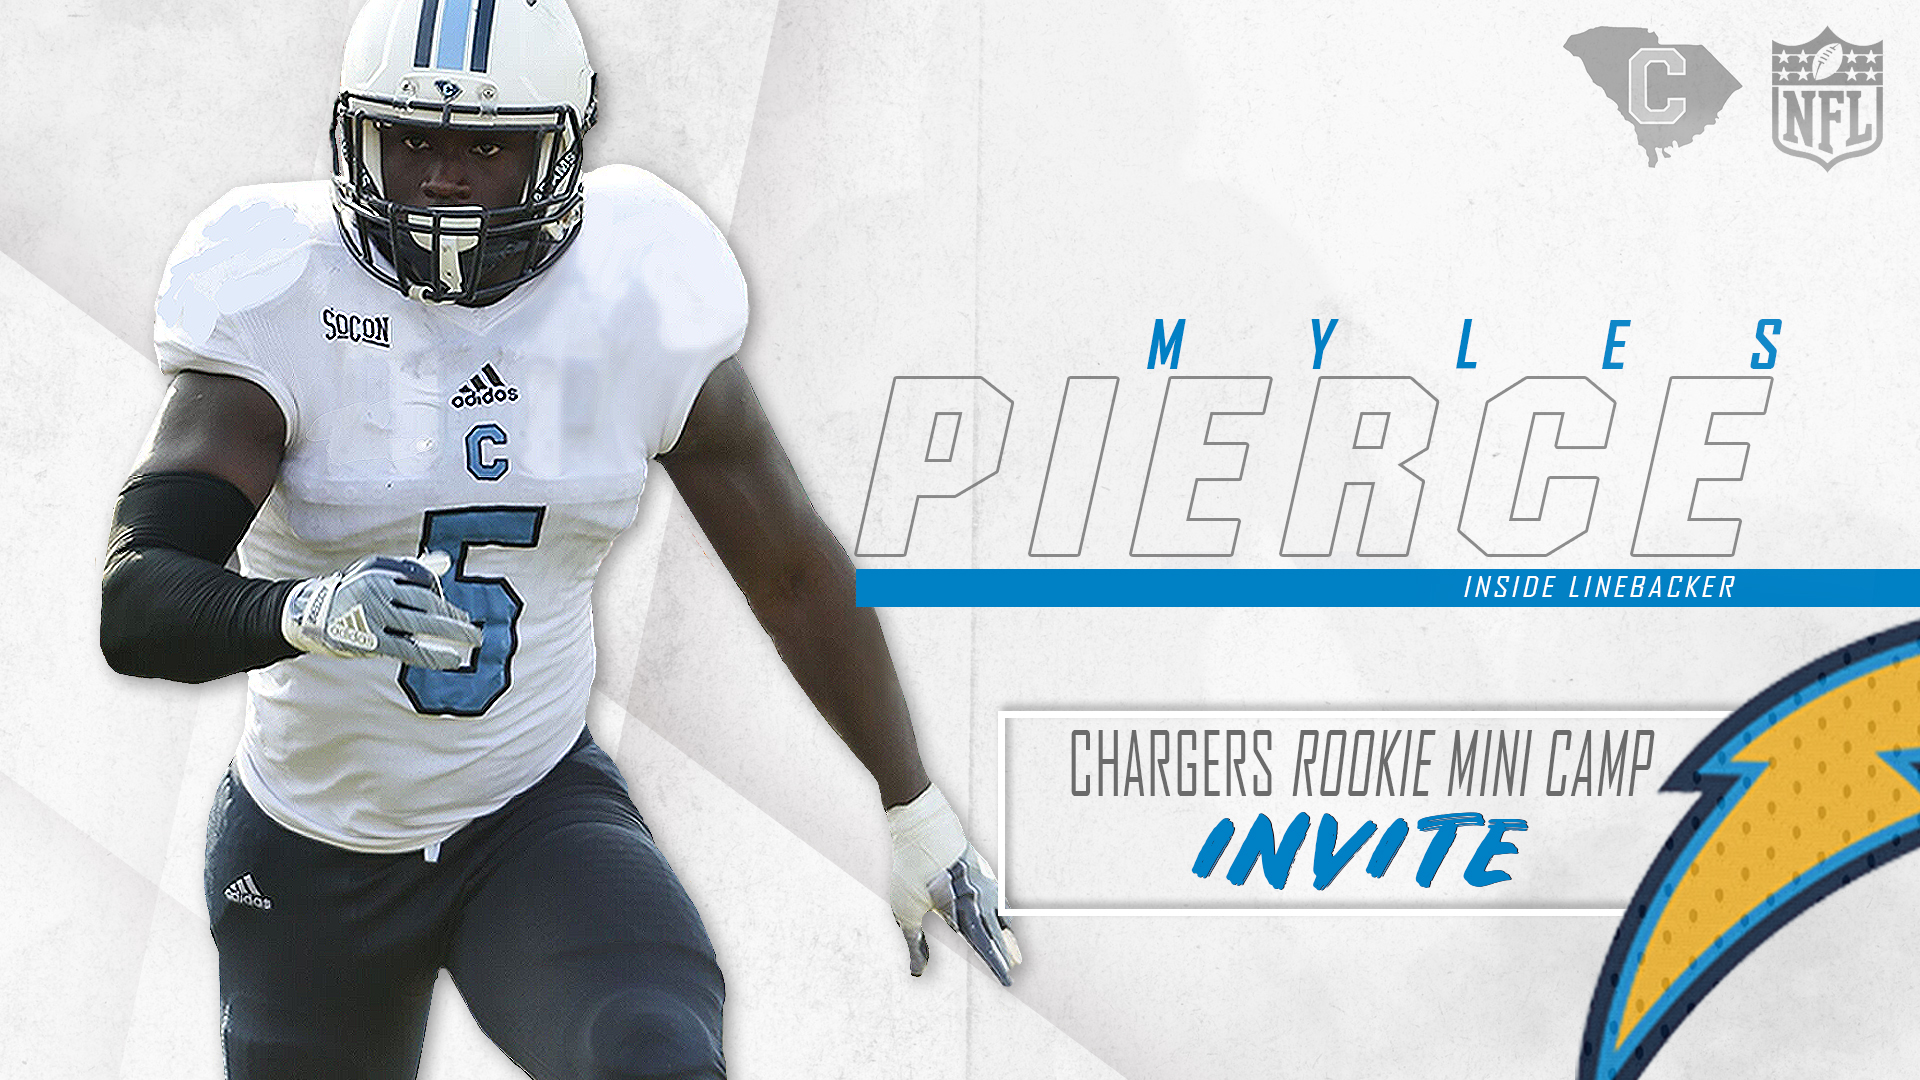 793ee8d1 Pierce Invited to Chargers Rookie Mini Camp - The Citadel Athletics